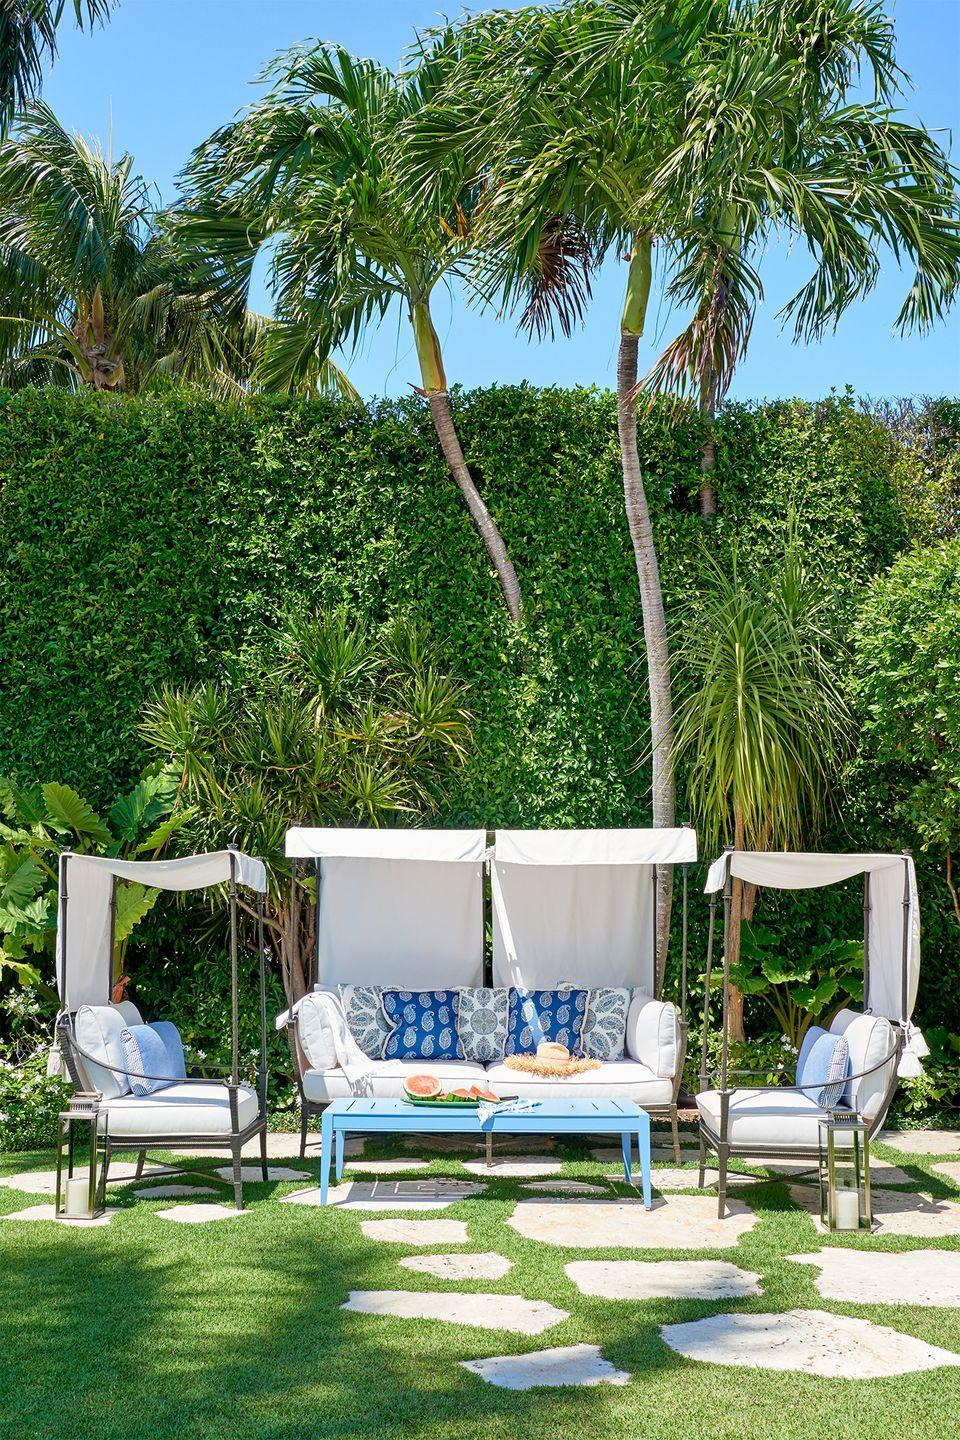 <p>Turn your backyard into a tropical oasis (well, kind of) by sticking patio furniture straight on the grass. Fill out the space with plush pillows, patterned blankets, and battery-operated lanterns.</p>